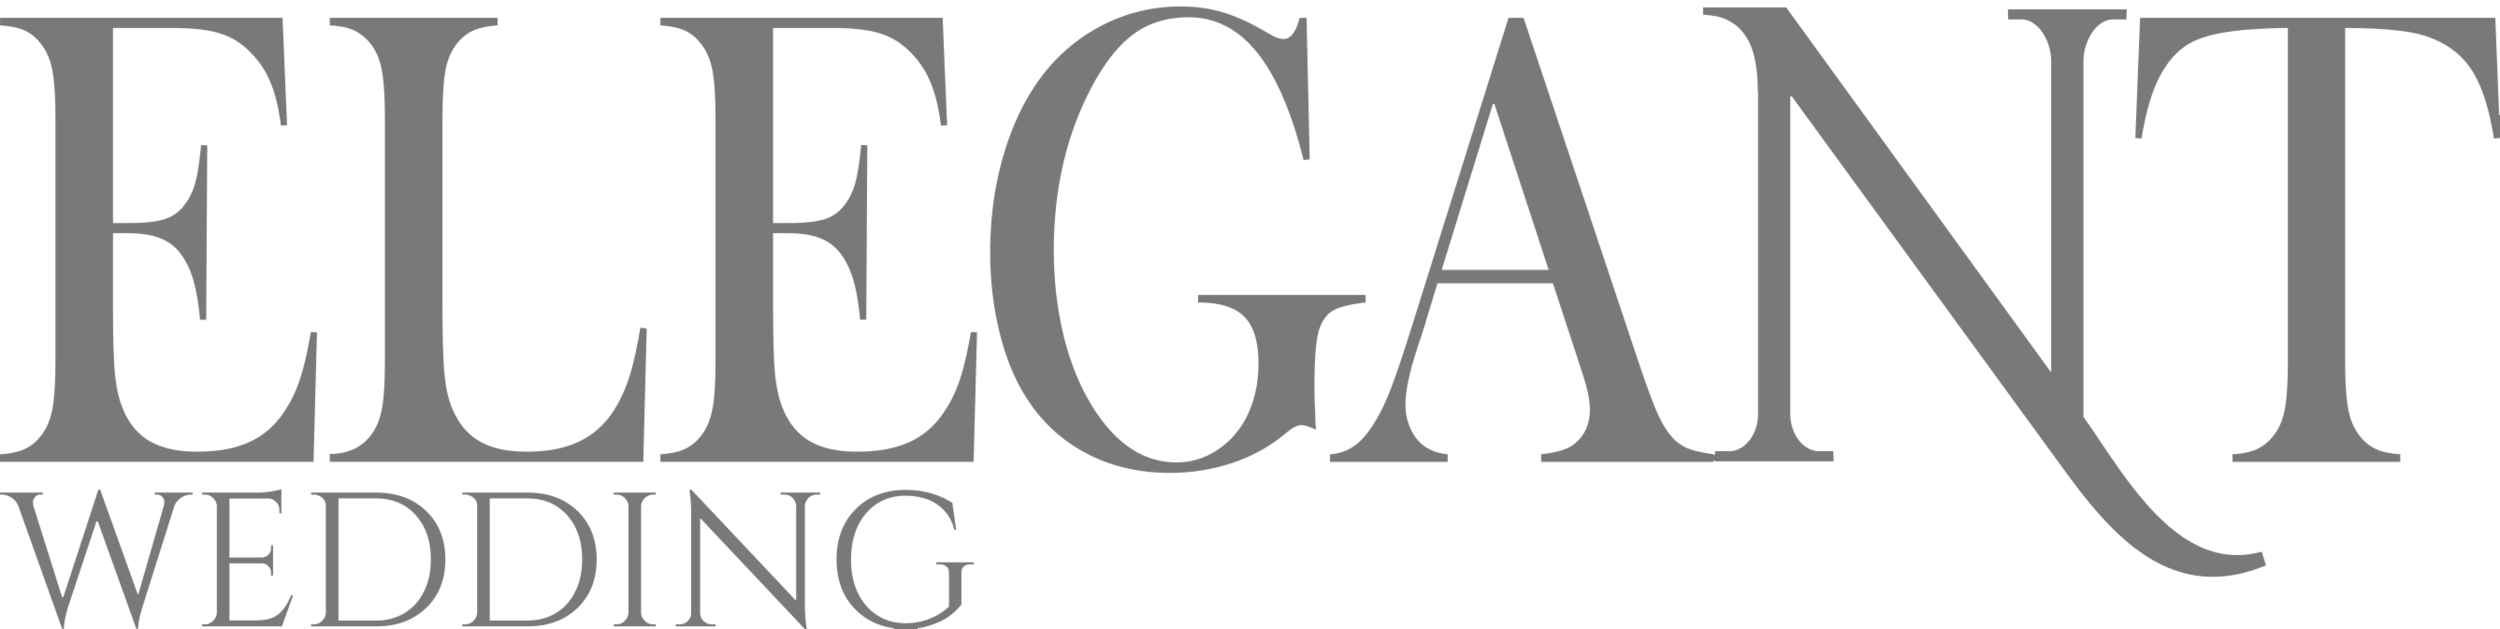 LOGO-FULL-BLACK-grey.png